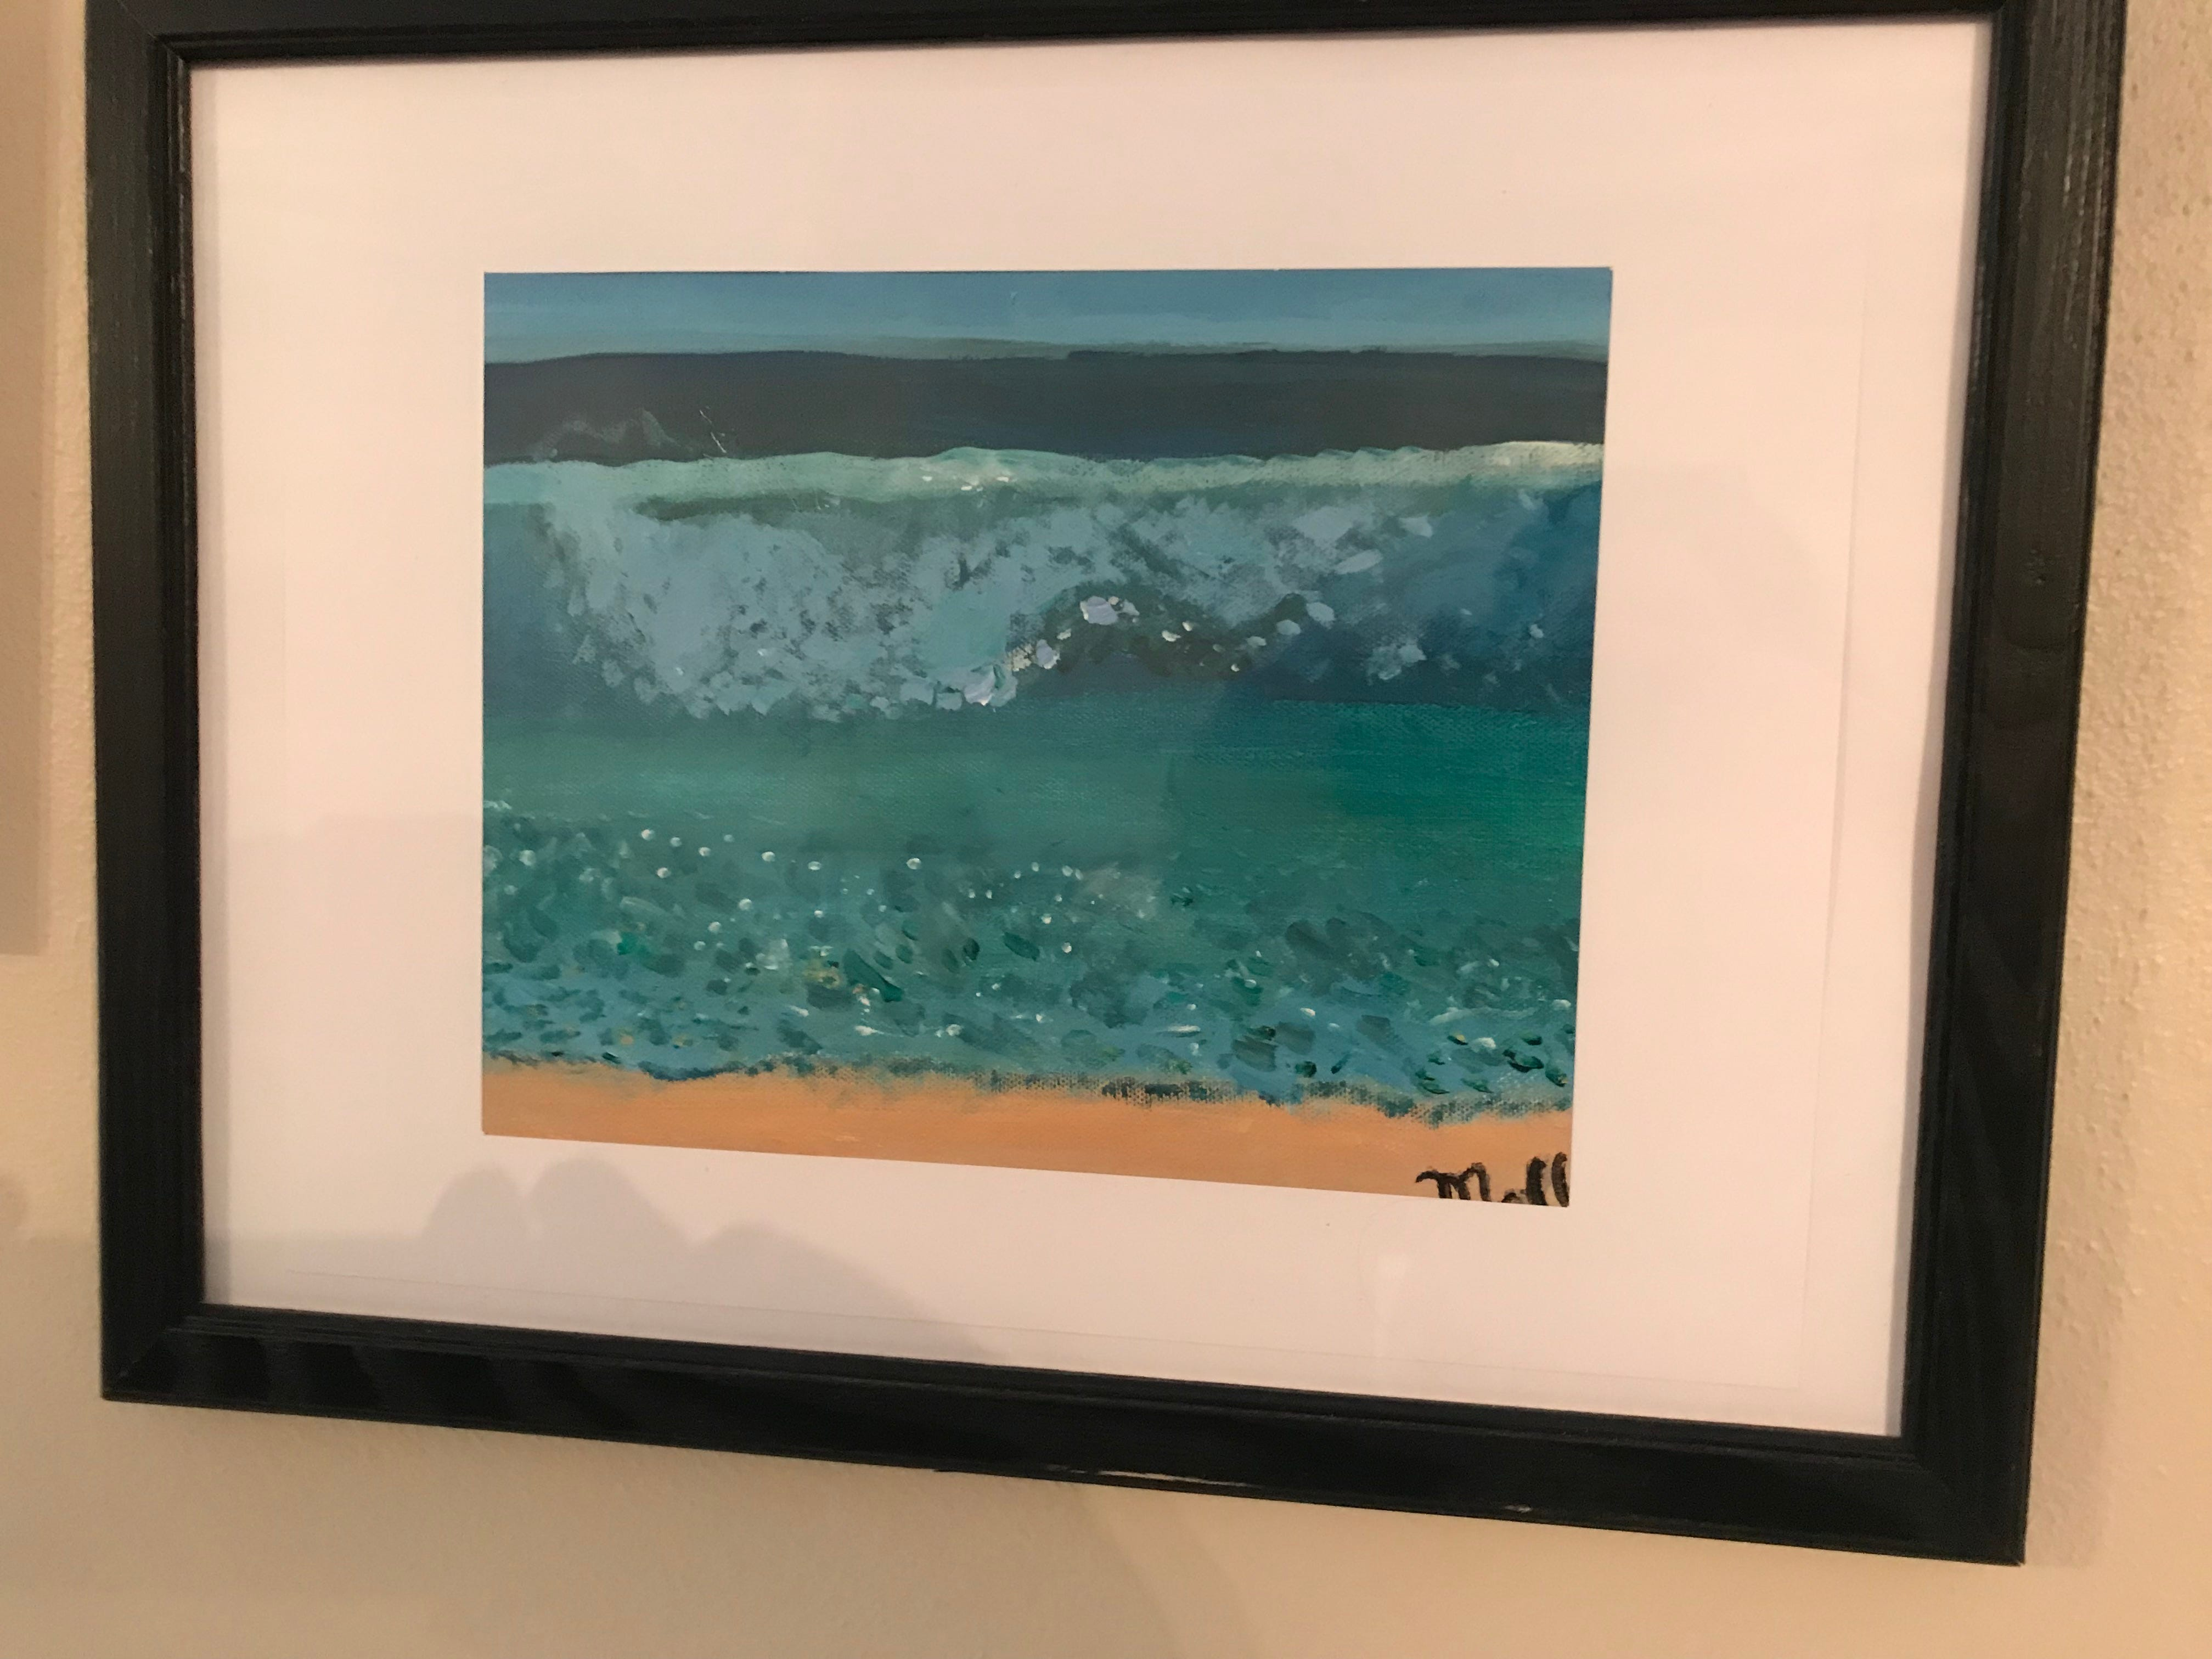 Johnson City Central School District seventh grader Molly Jablonowski, 12, has been creating art for the last 5 years. Among her work is this seascape, which hangs in the living room of her Johnson City home.